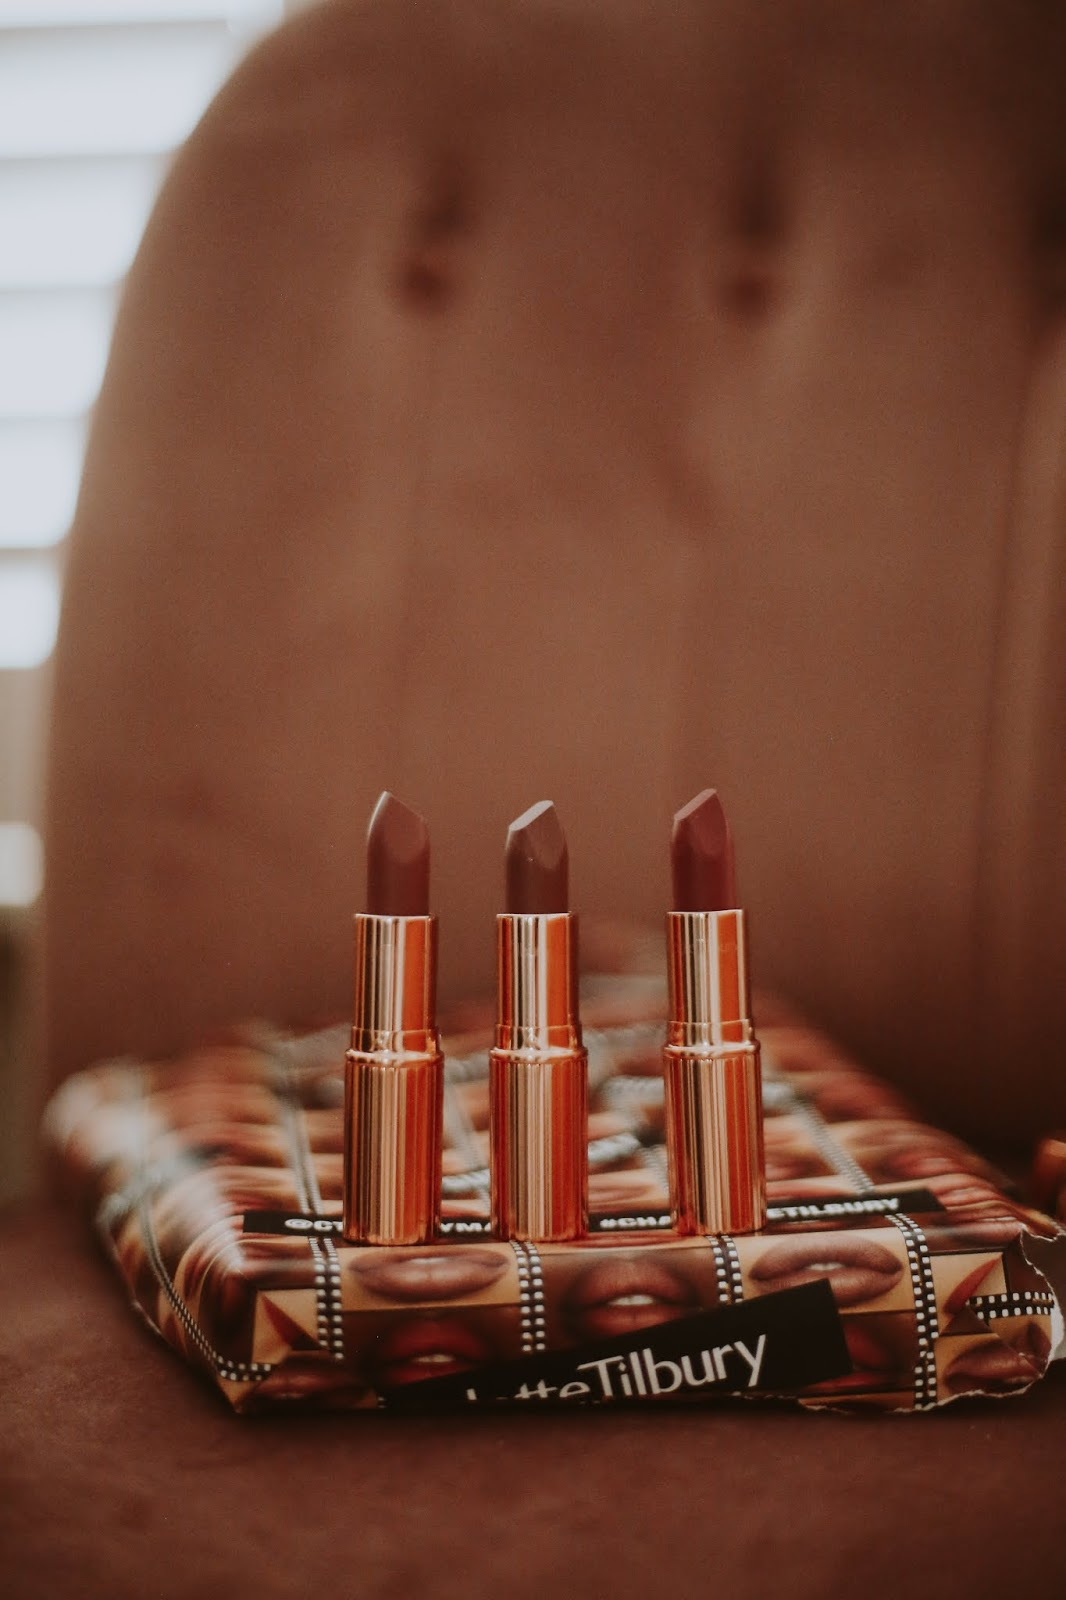 Charlotte Tilbury Matte Revolution Supermodel Lipsticks Review And Swatches